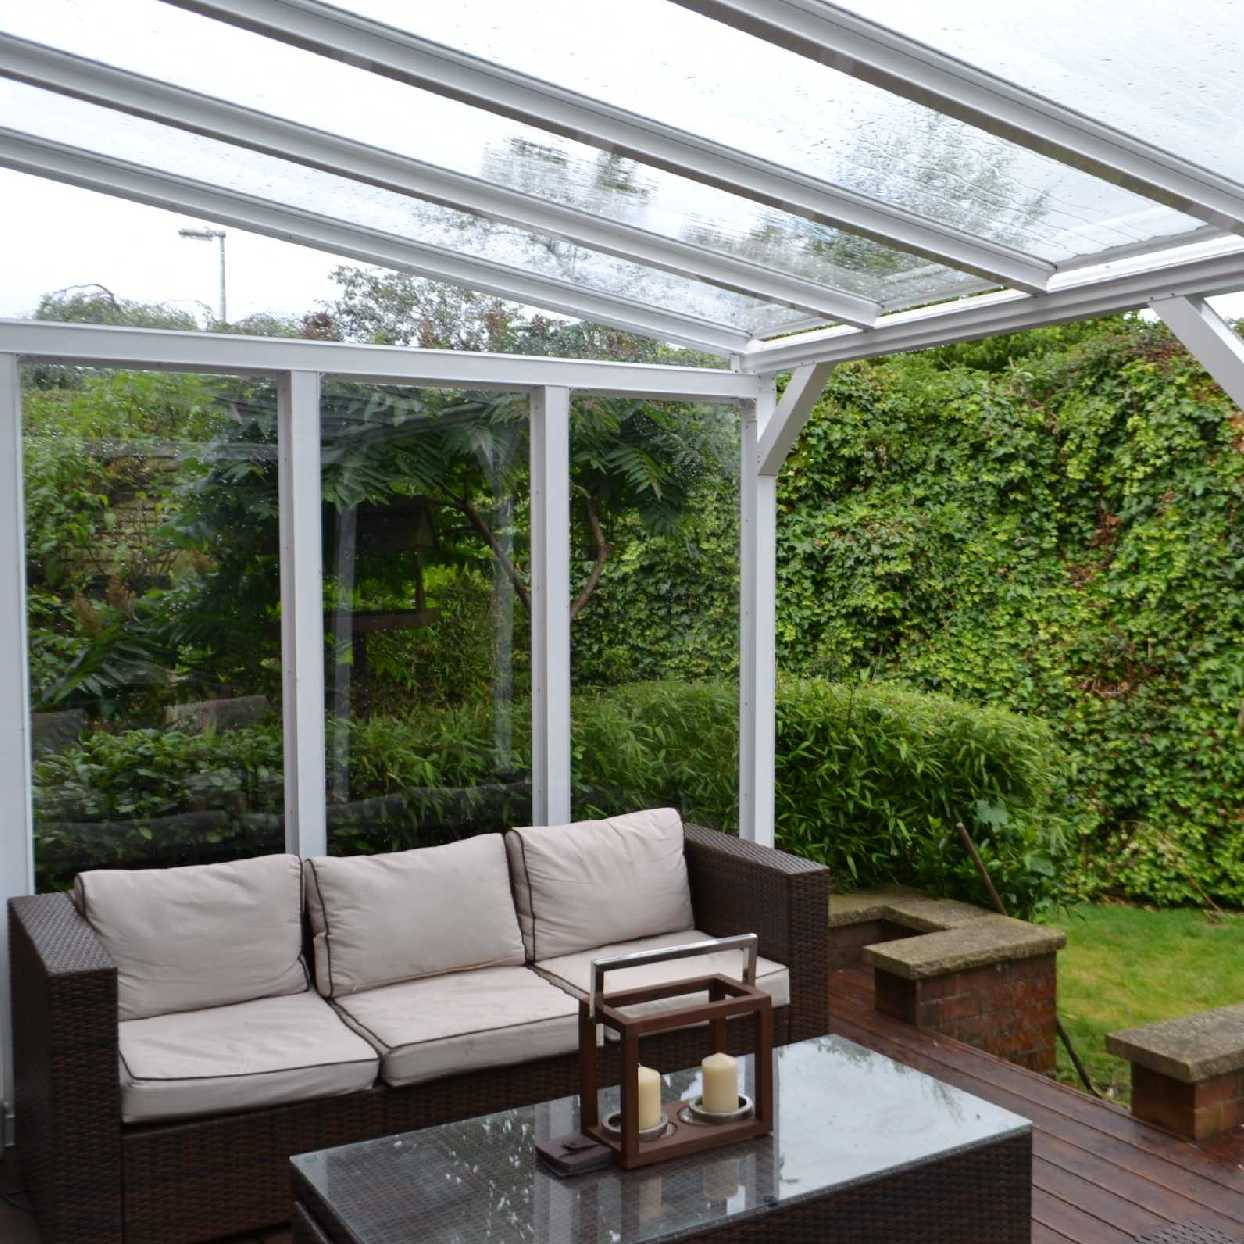 Omega Smart Lean-To Canopy with 6mm Glass Clear Plate Polycarbonate Glazing - 9.8m (W) x 2.5m (P), (5) Supporting Posts